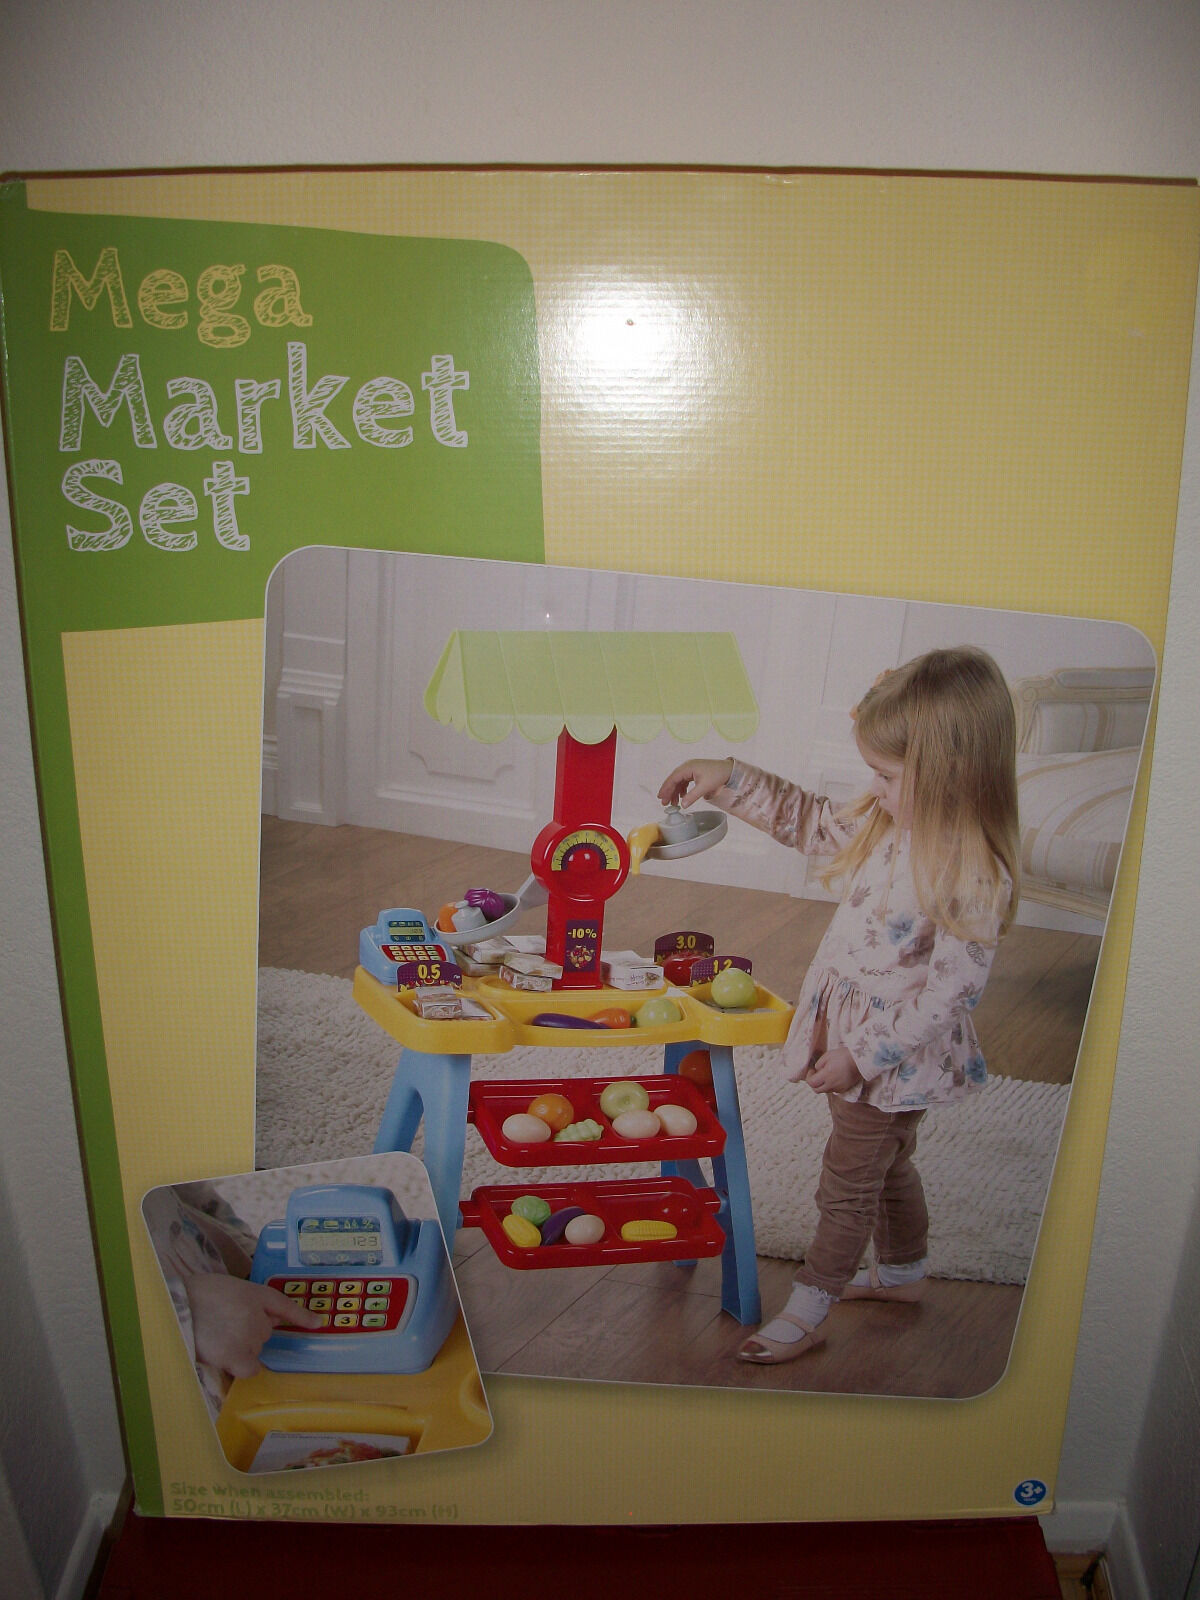 Pretend Play 87 Pcs Mega Market Stall With Scales, Cash Register & Accessories